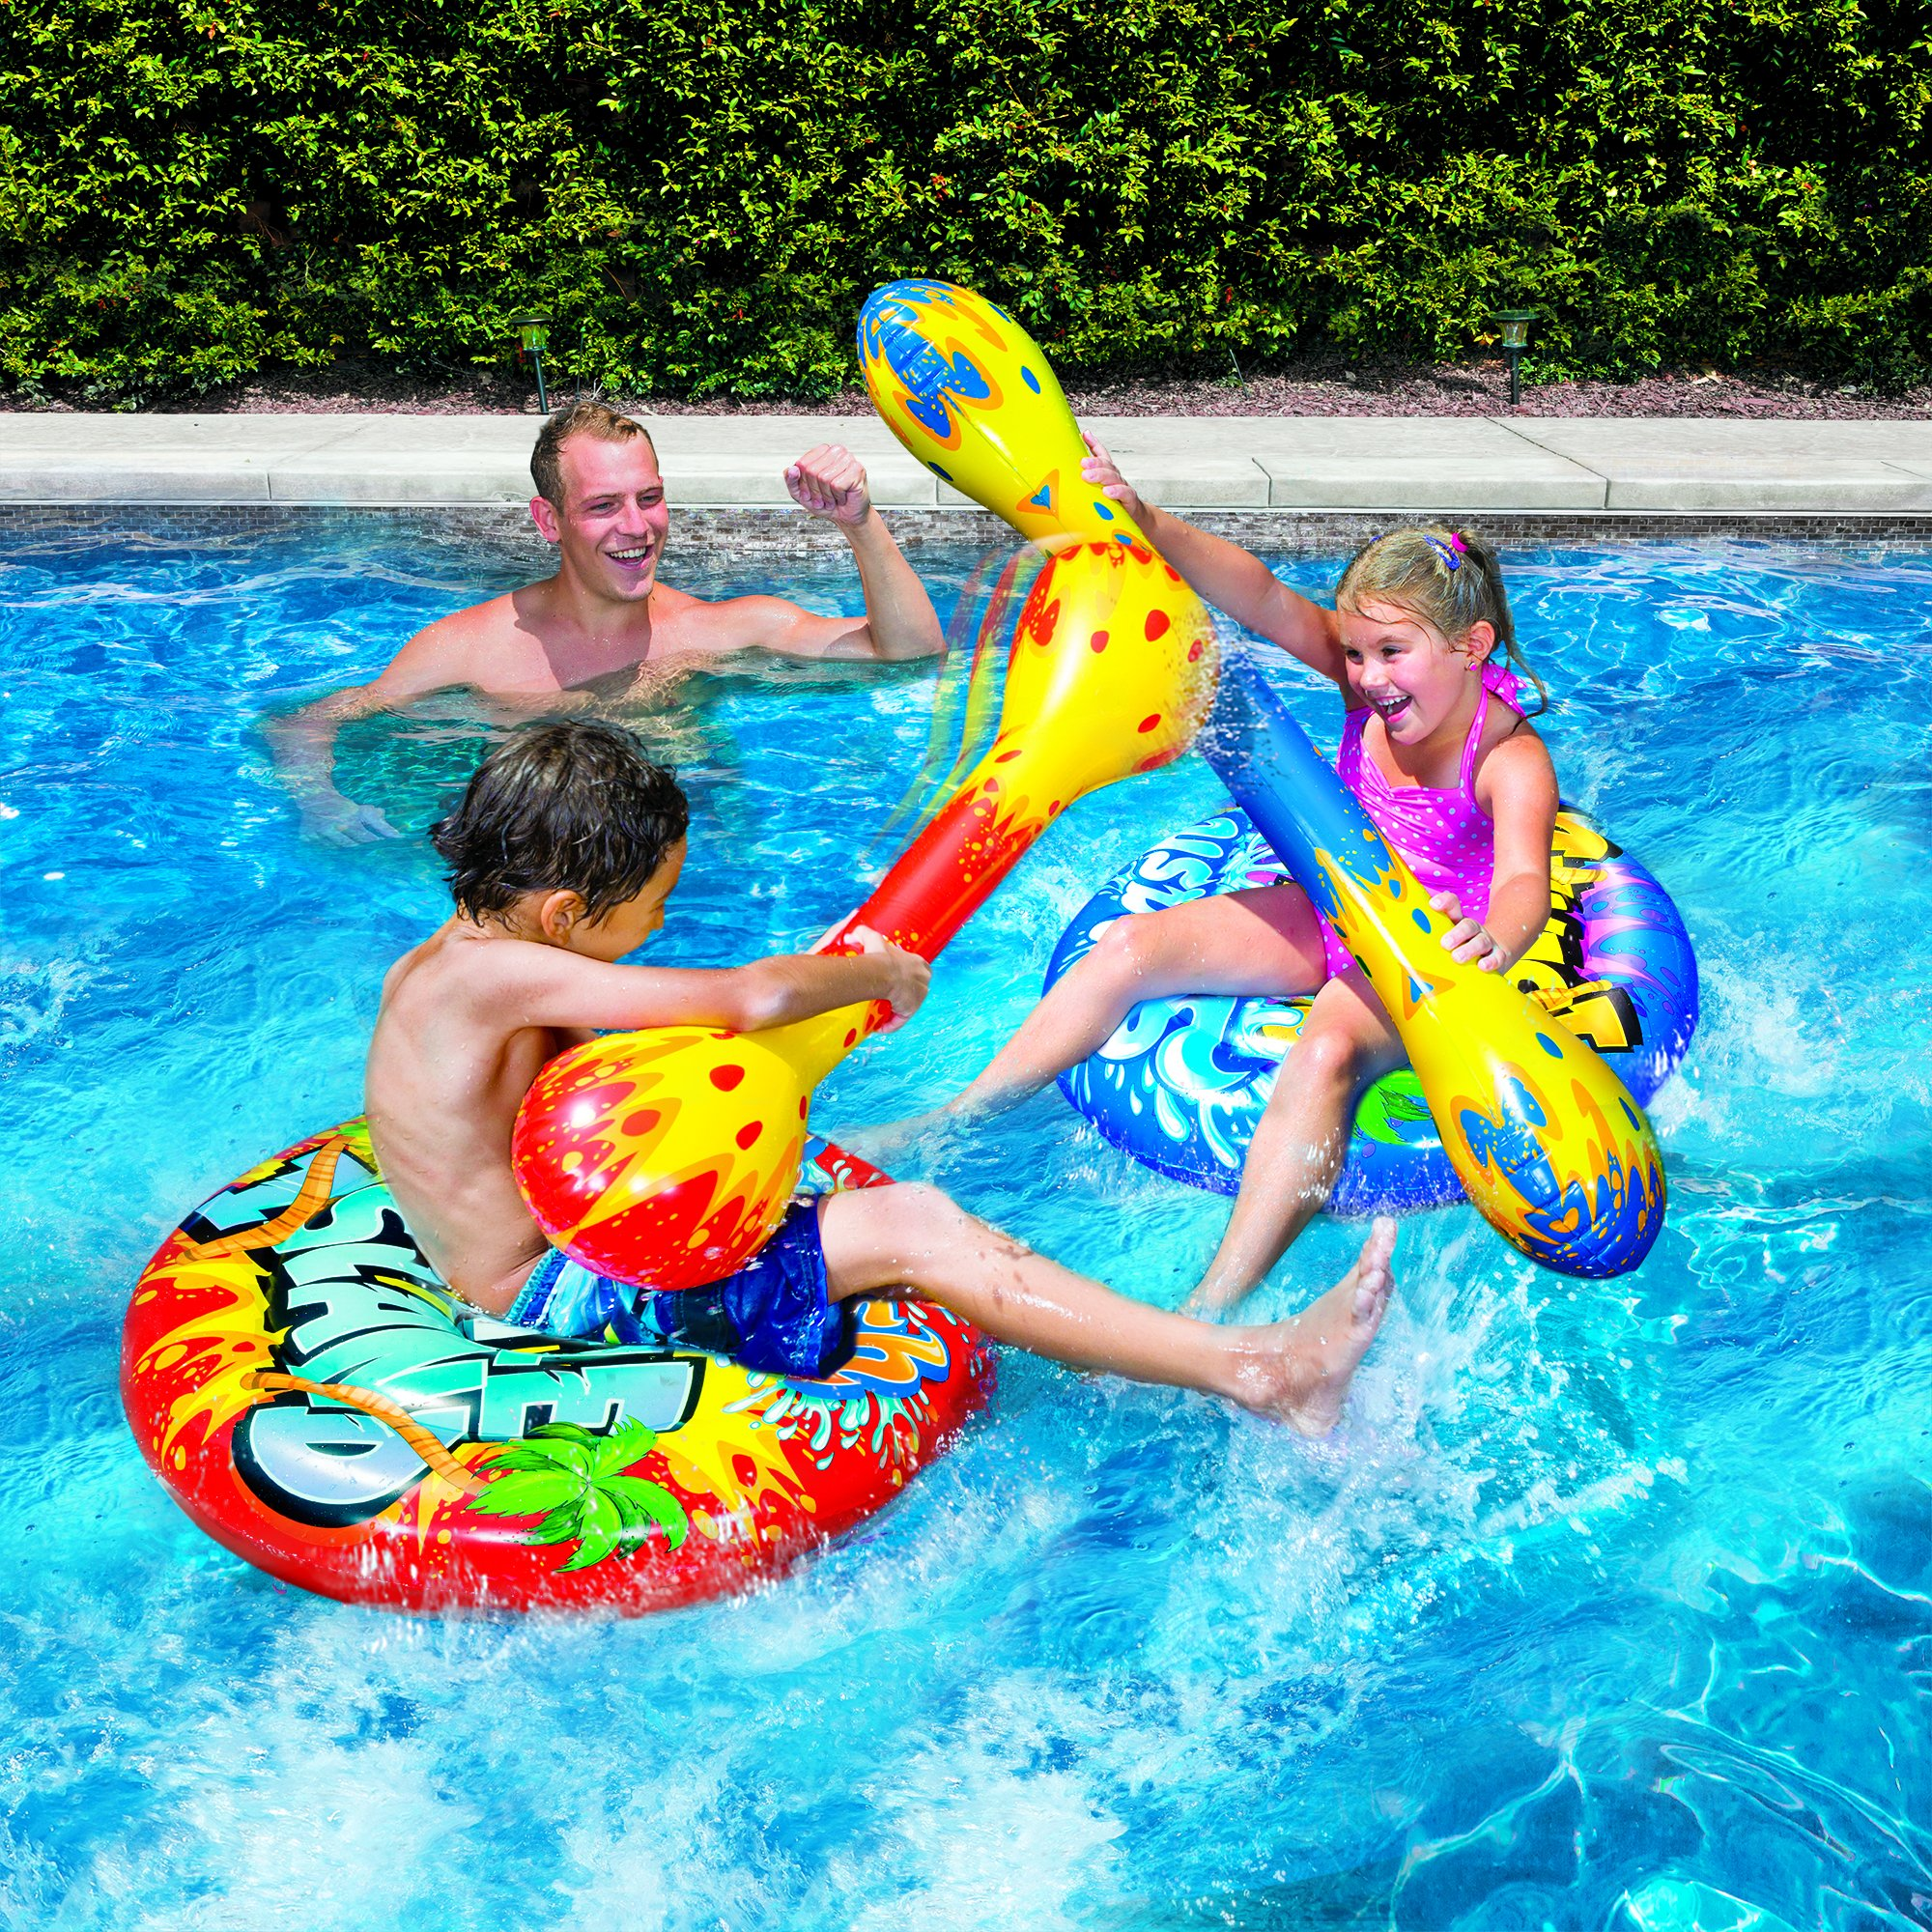 banzai splash battle islands includes two inflatable air islands 2